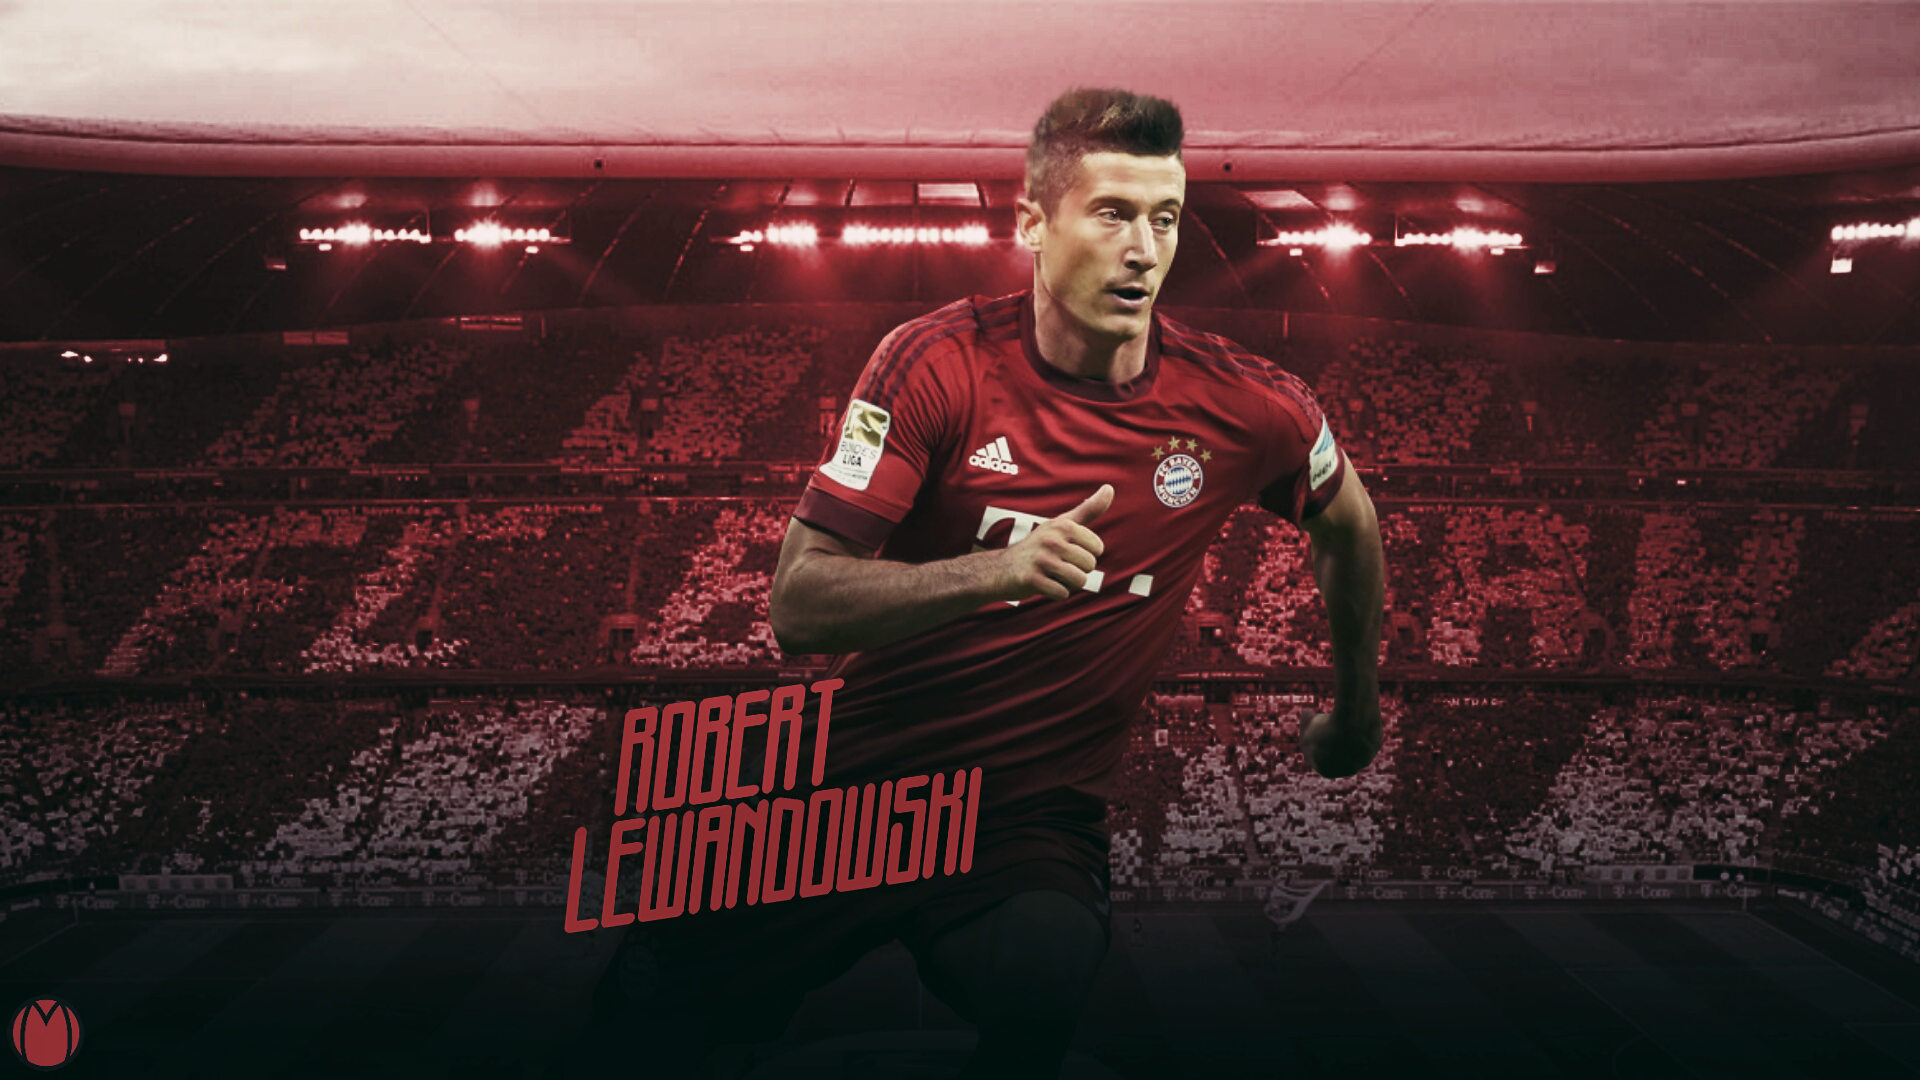 Robert Lewandowski Wallpapers And Backgrounds